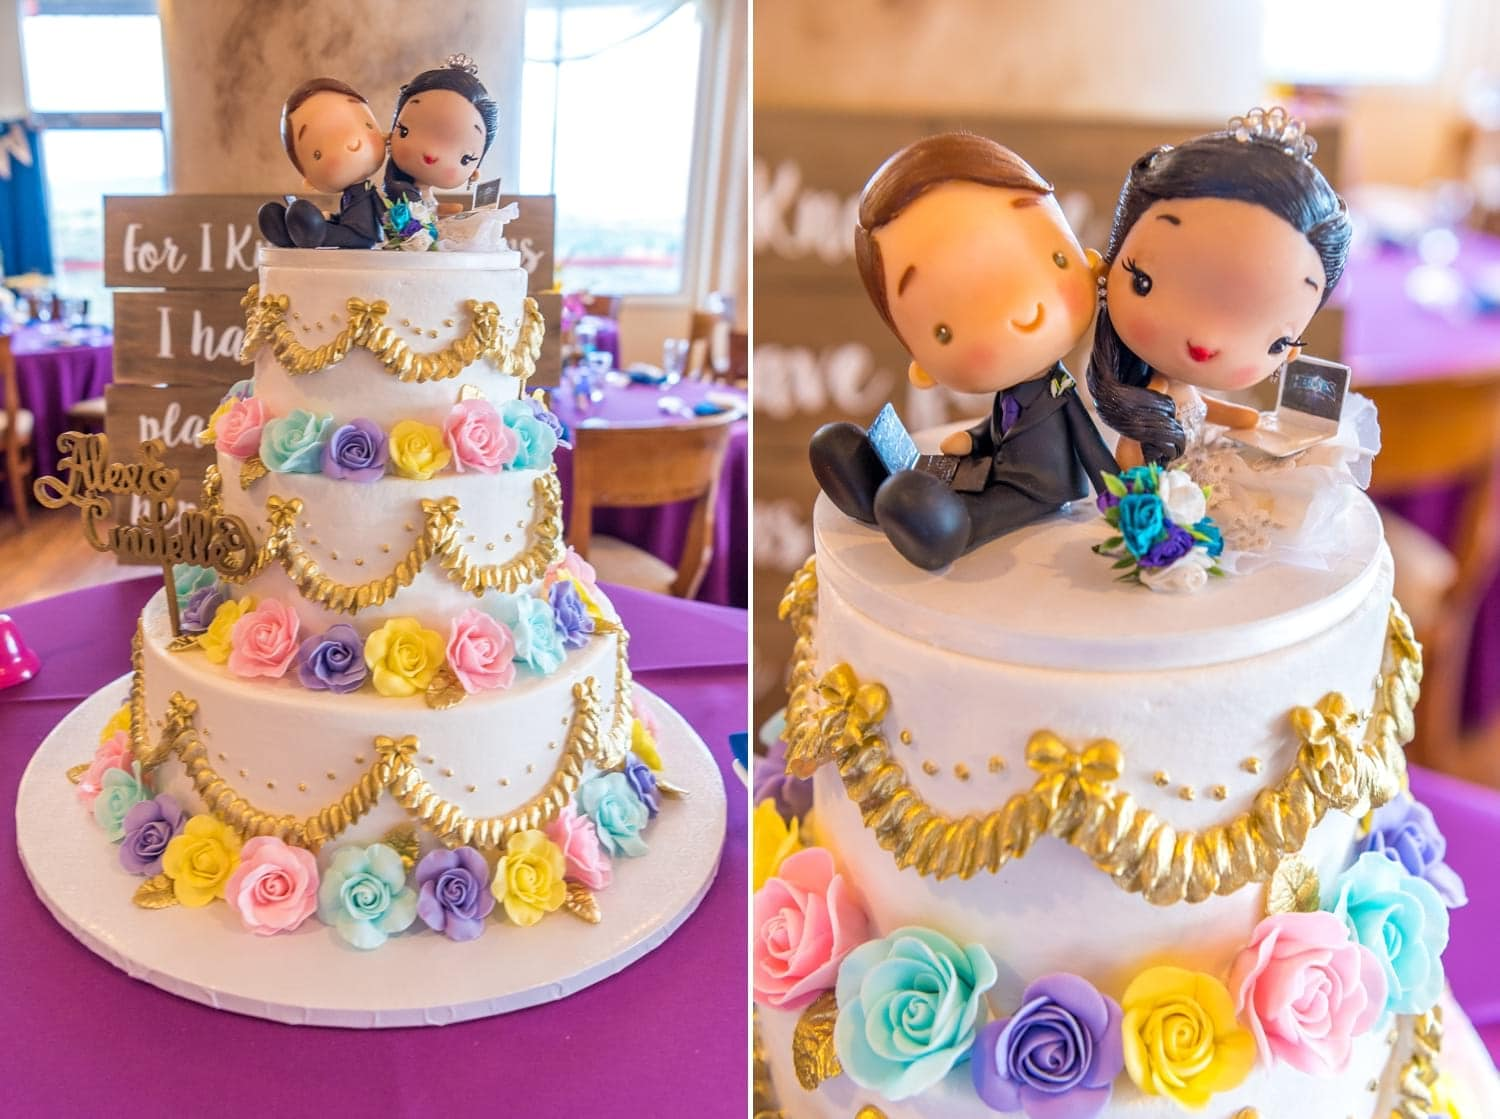 Image of wedding cake and wedding cake topper.